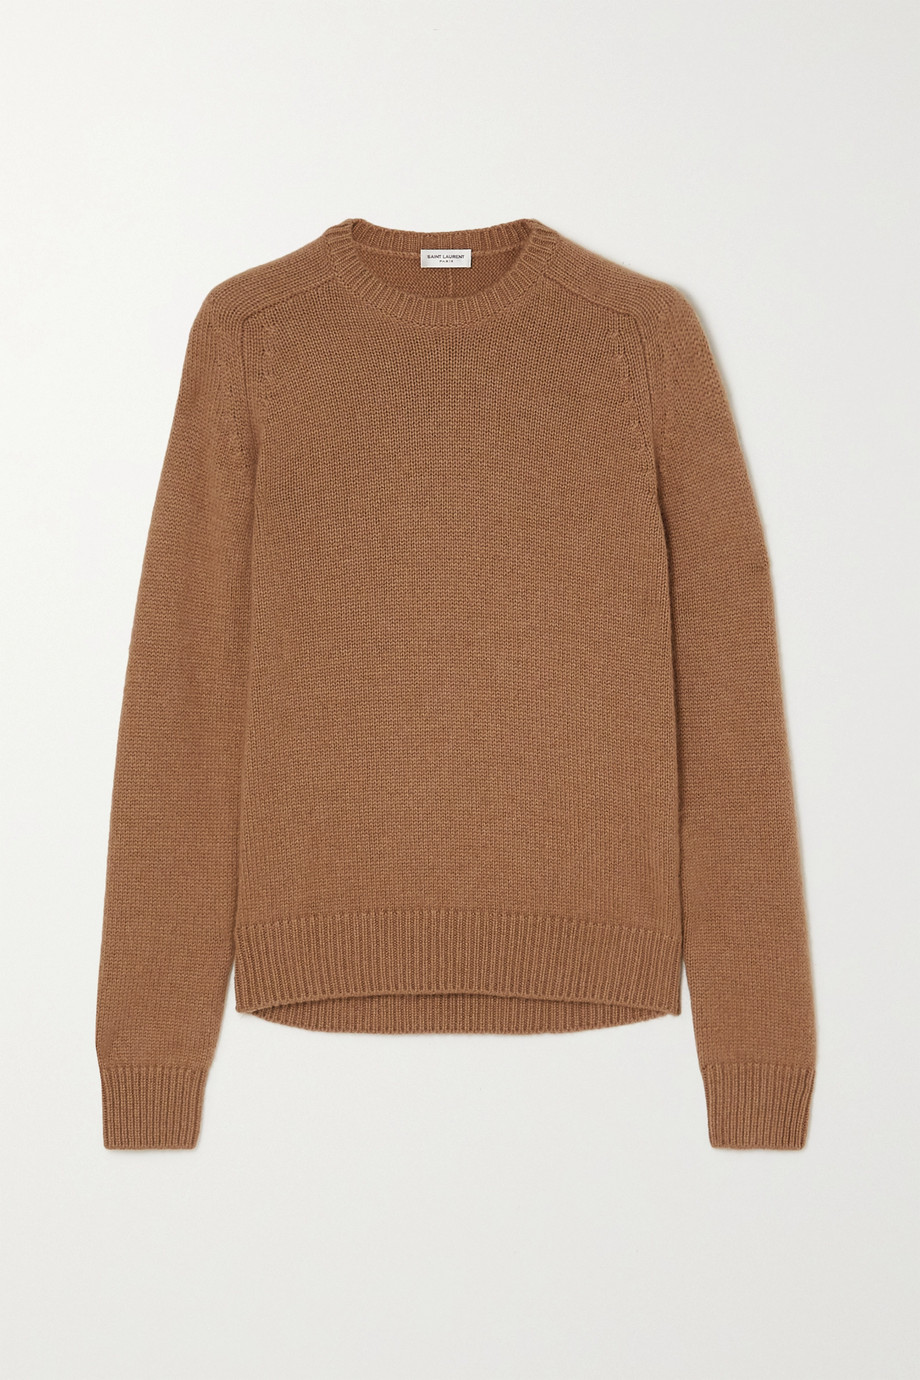 SAINT LAURENT Camel wool sweater